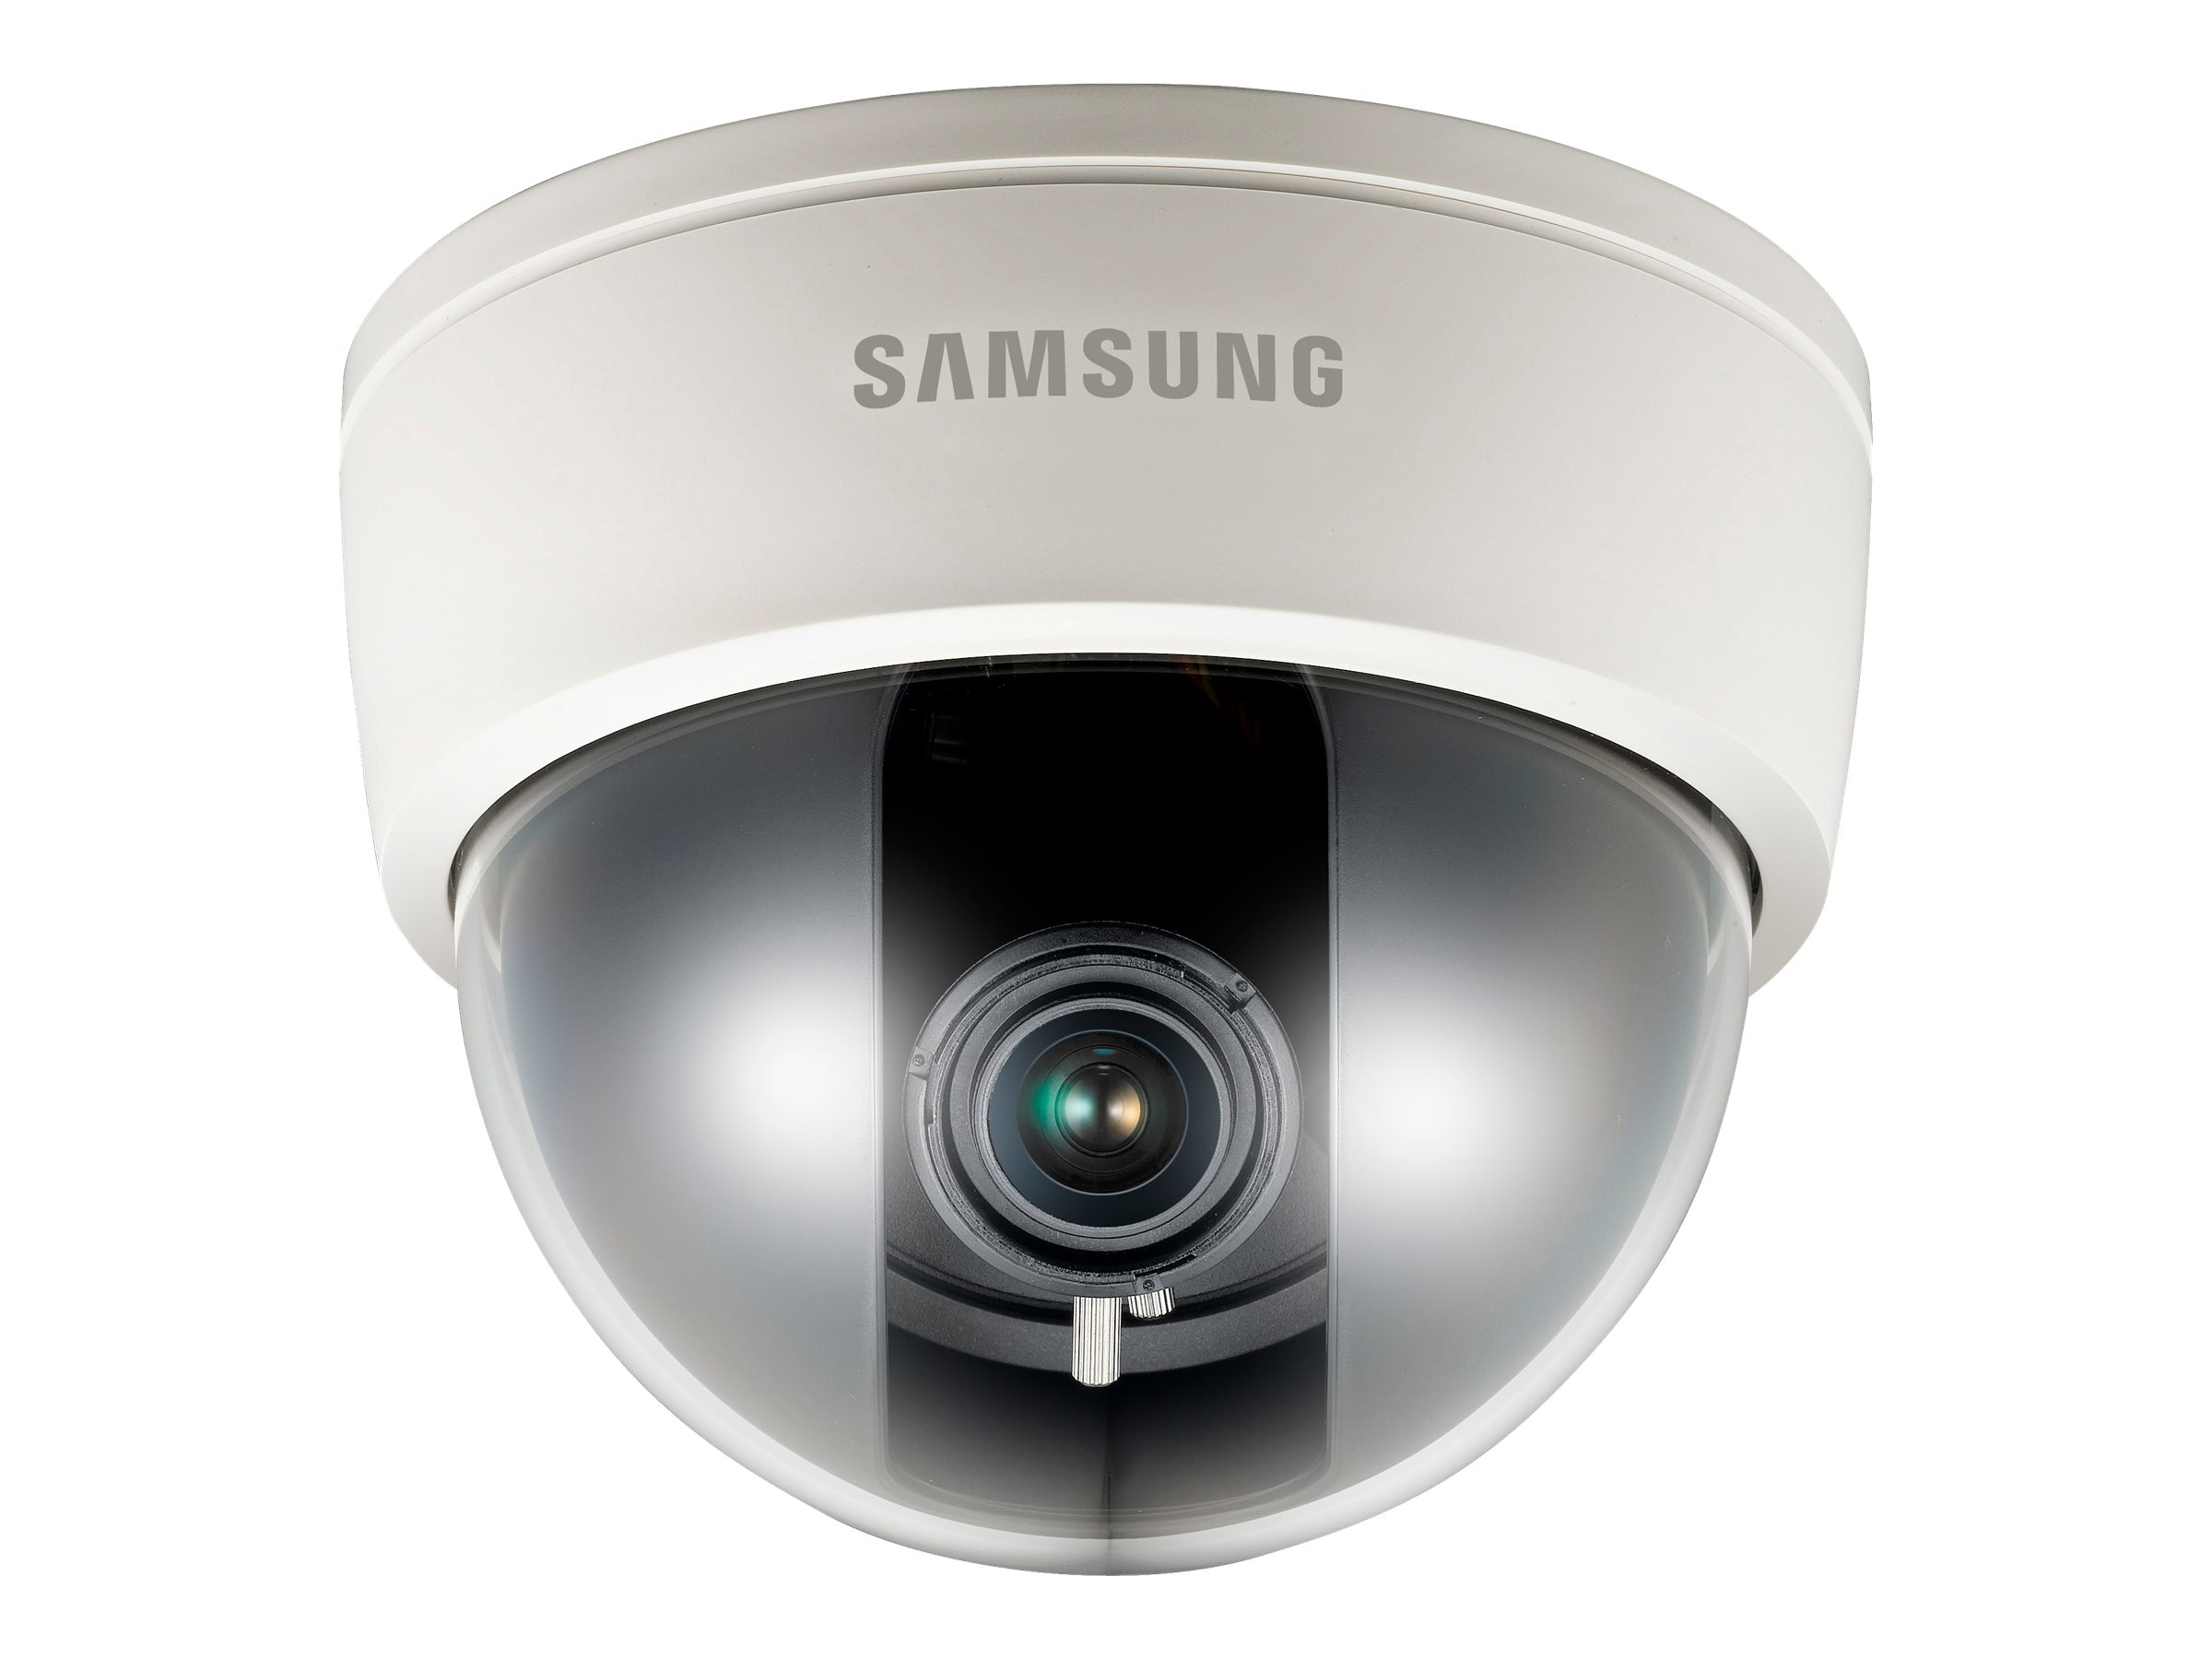 Samsung High Resolution Day & Night Varifocal Dome Camera